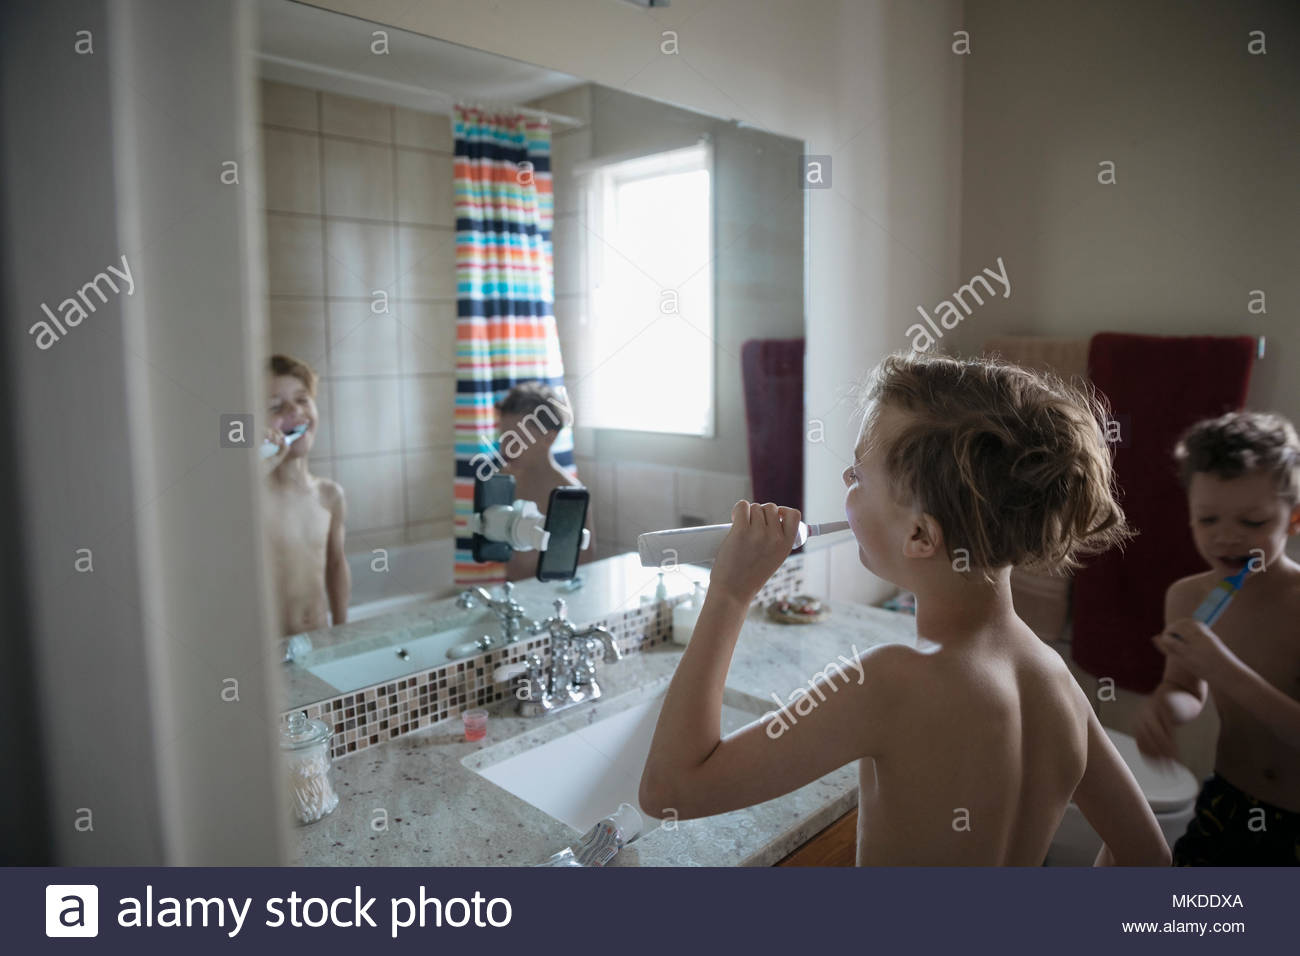 Bare chested boy brushing teeth in bathroom mirror - Stock Image